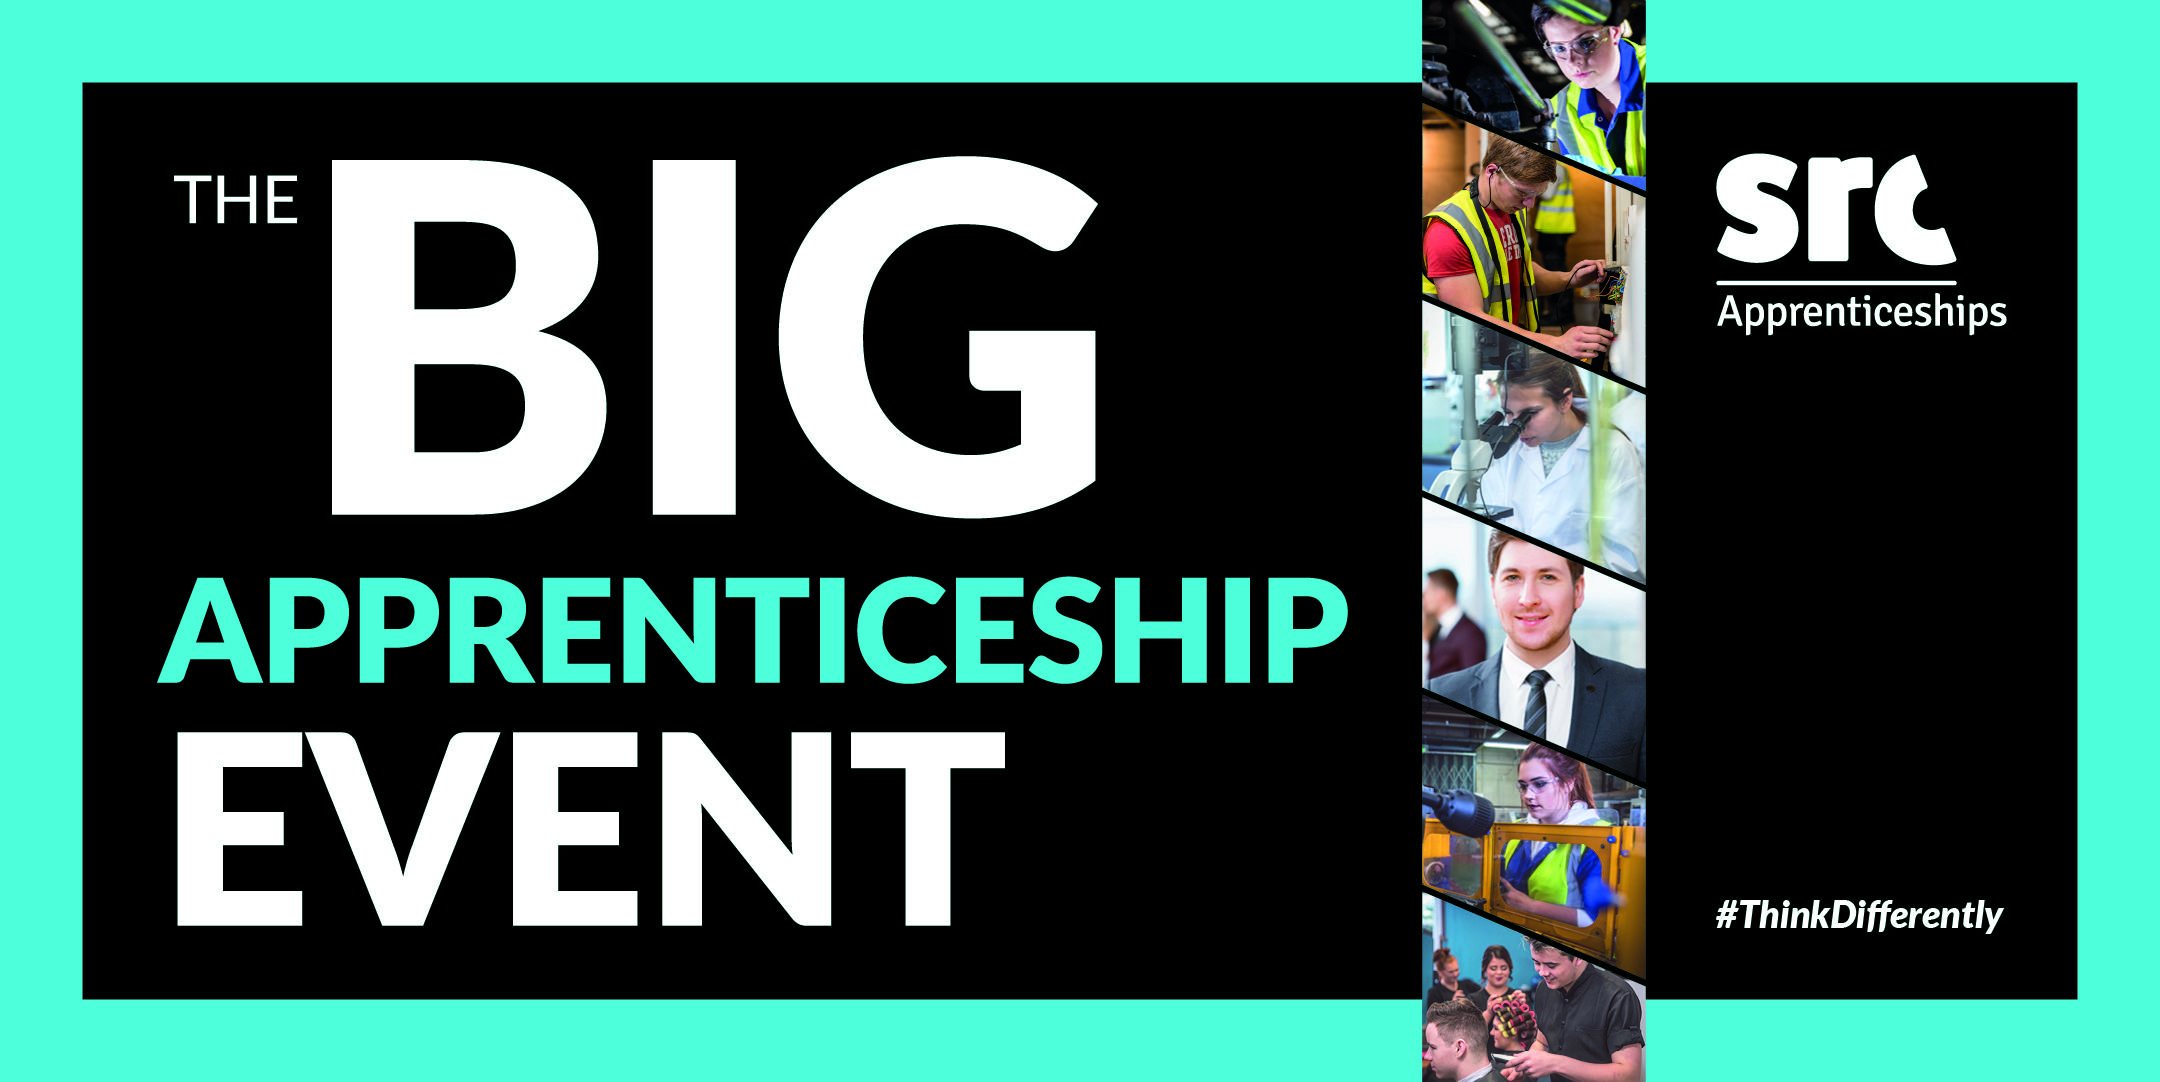 The Big Apprenticeship Event Newry - March 2018